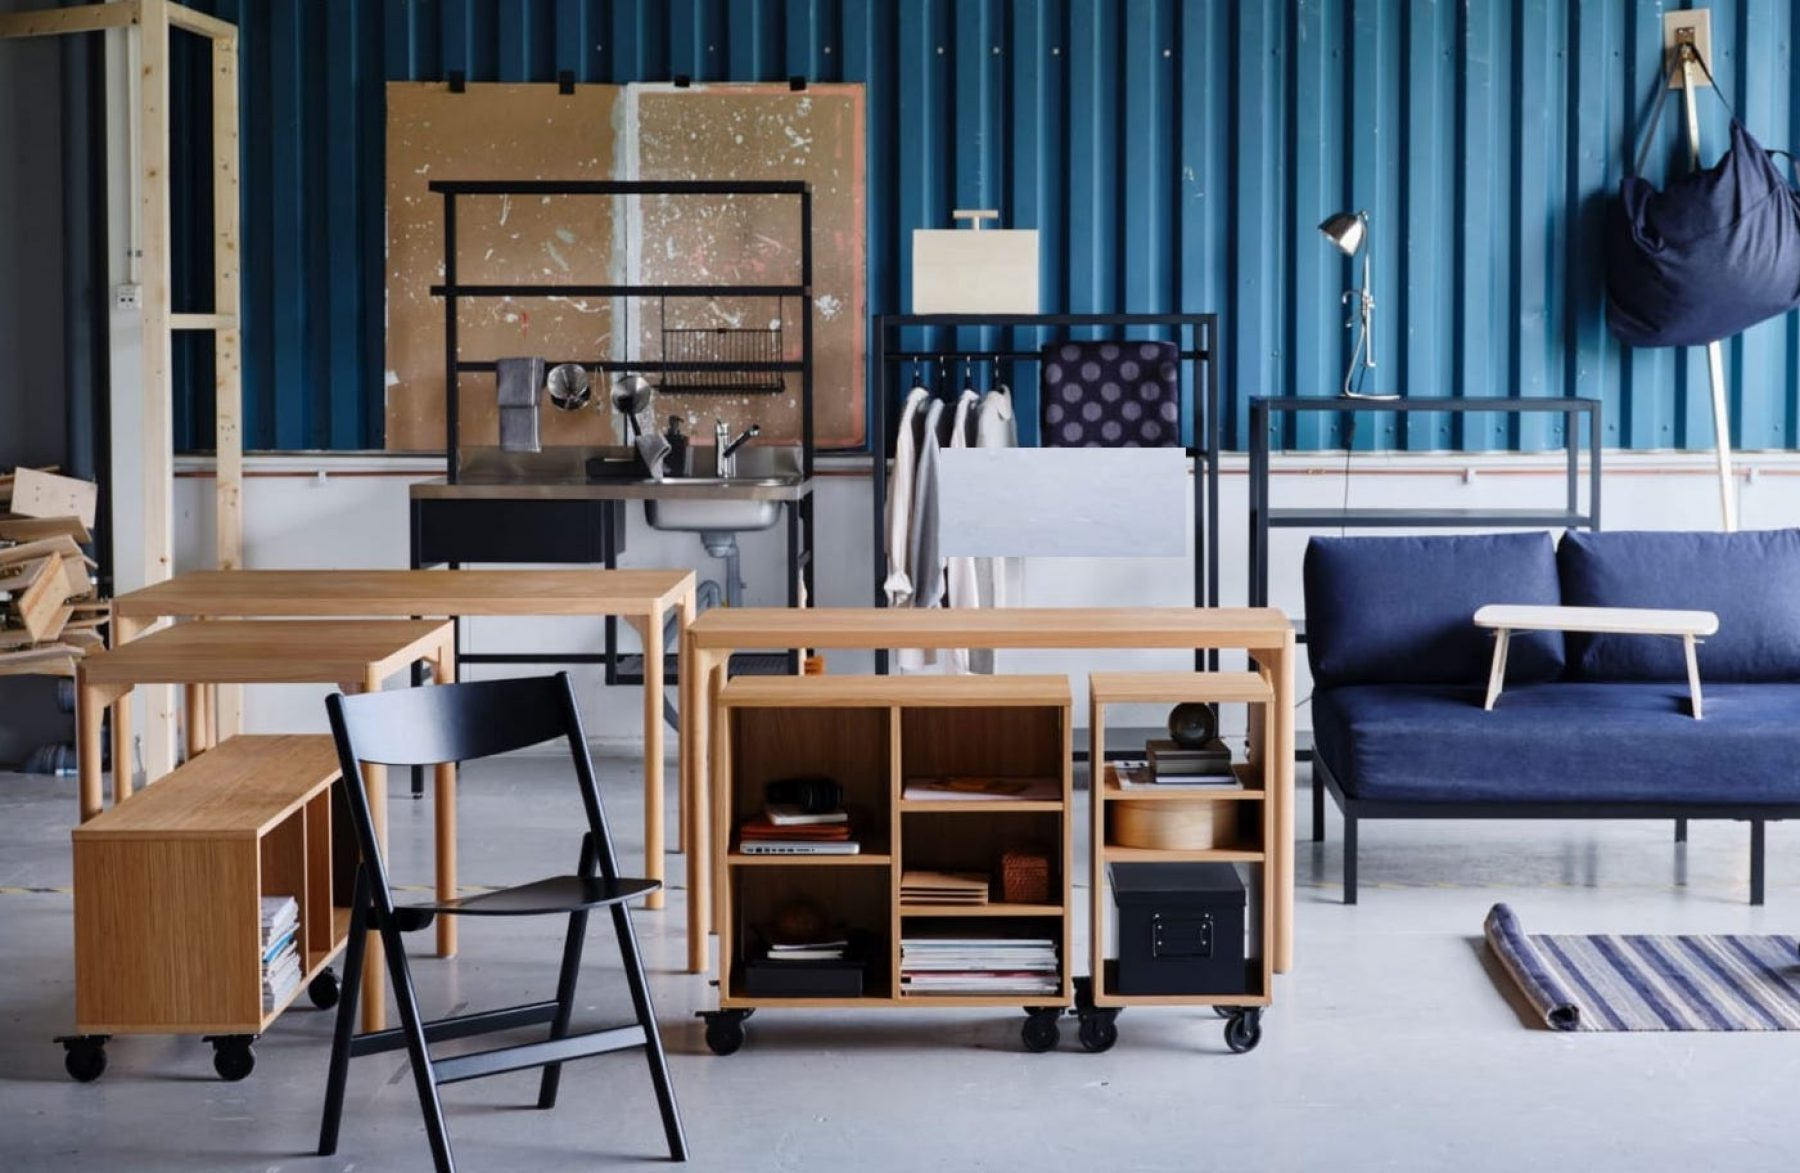 Image for Circular economy: Ikea has pledged to buy back customers' old furniture